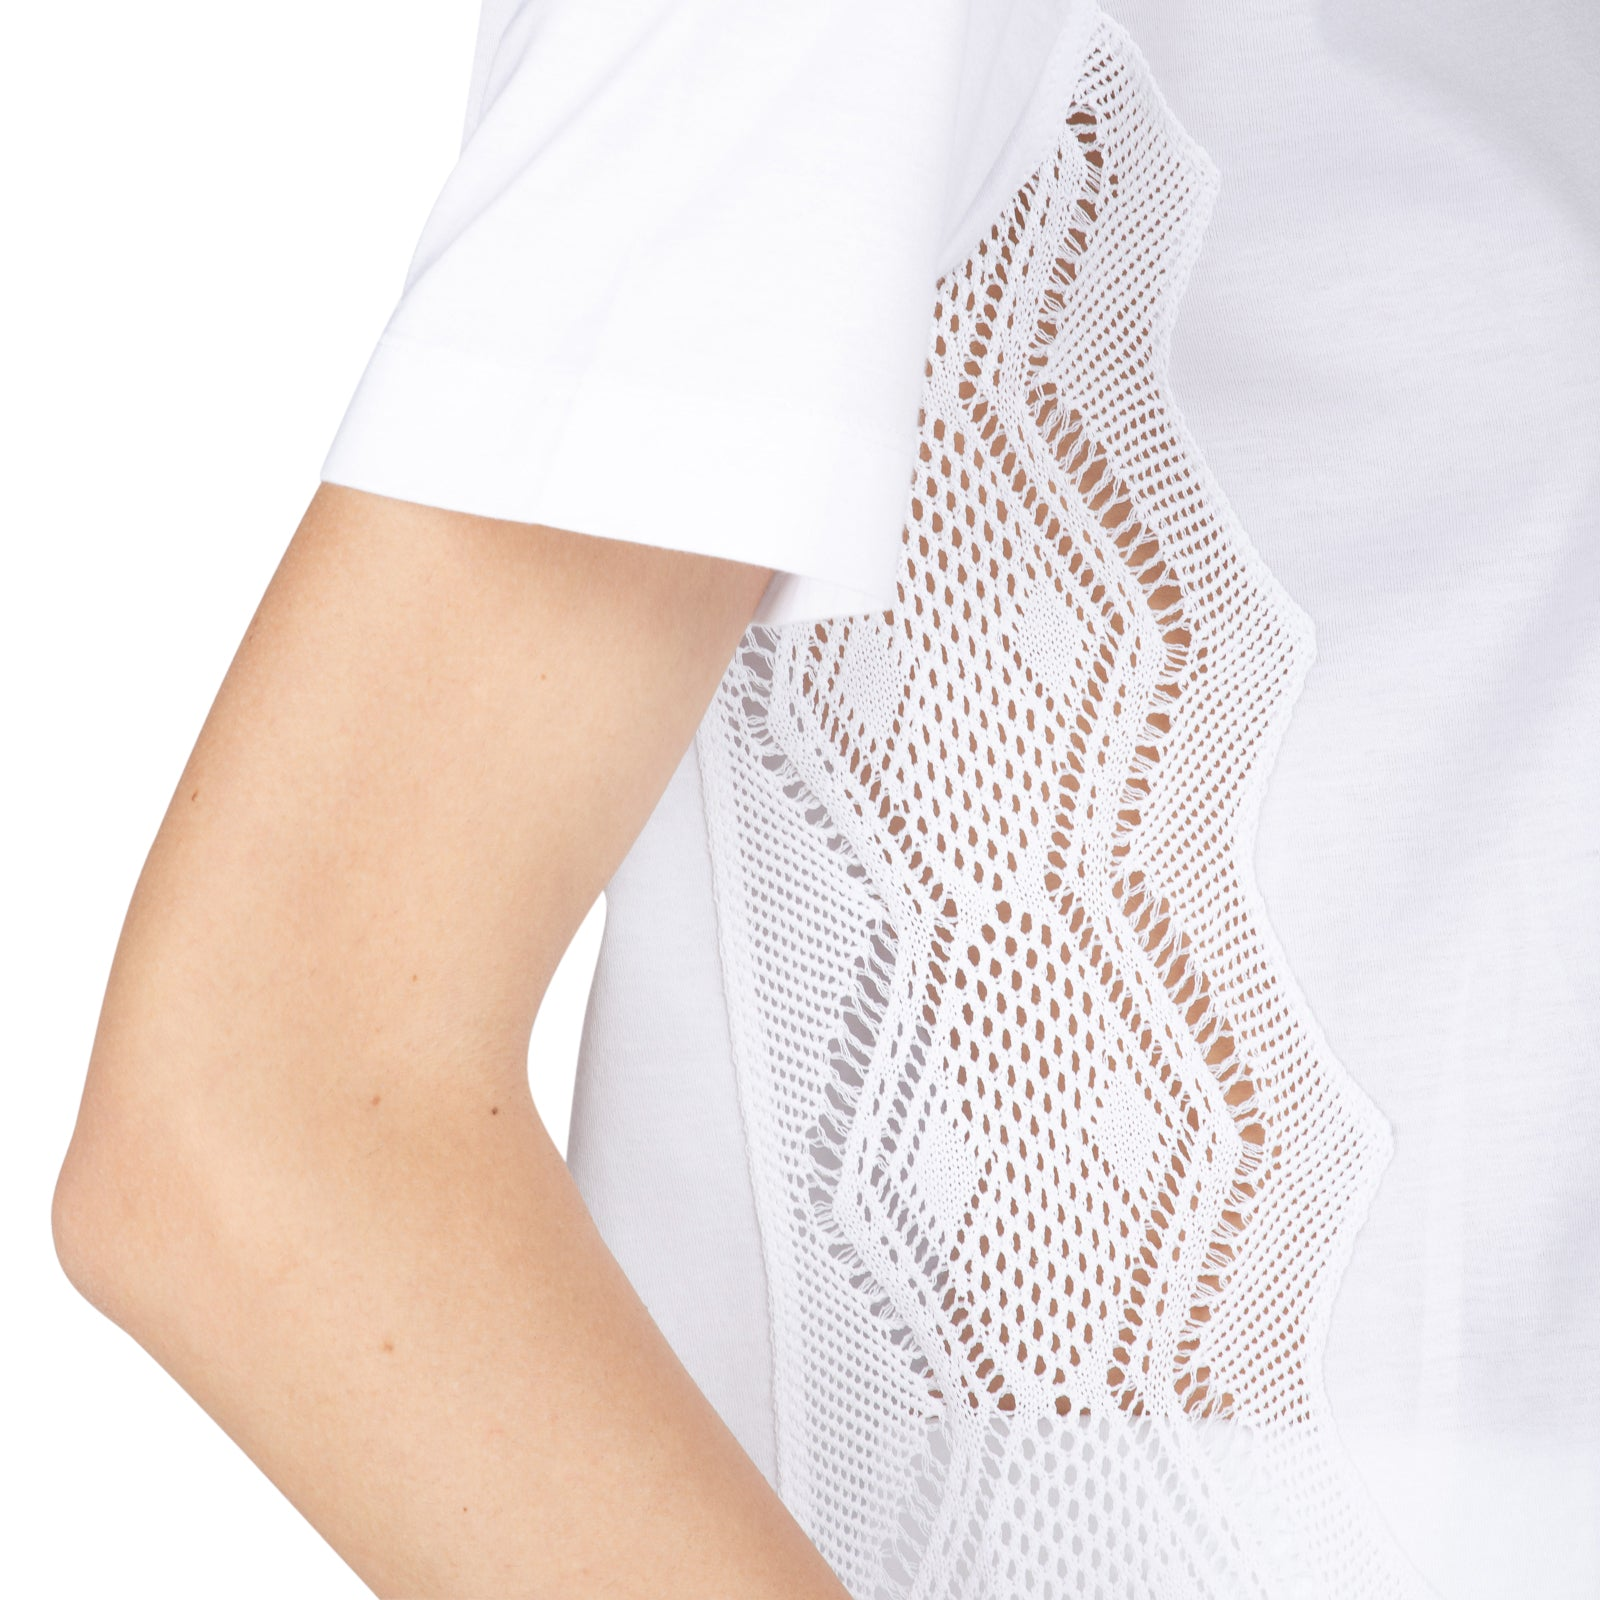 The T-Shirt with Lace